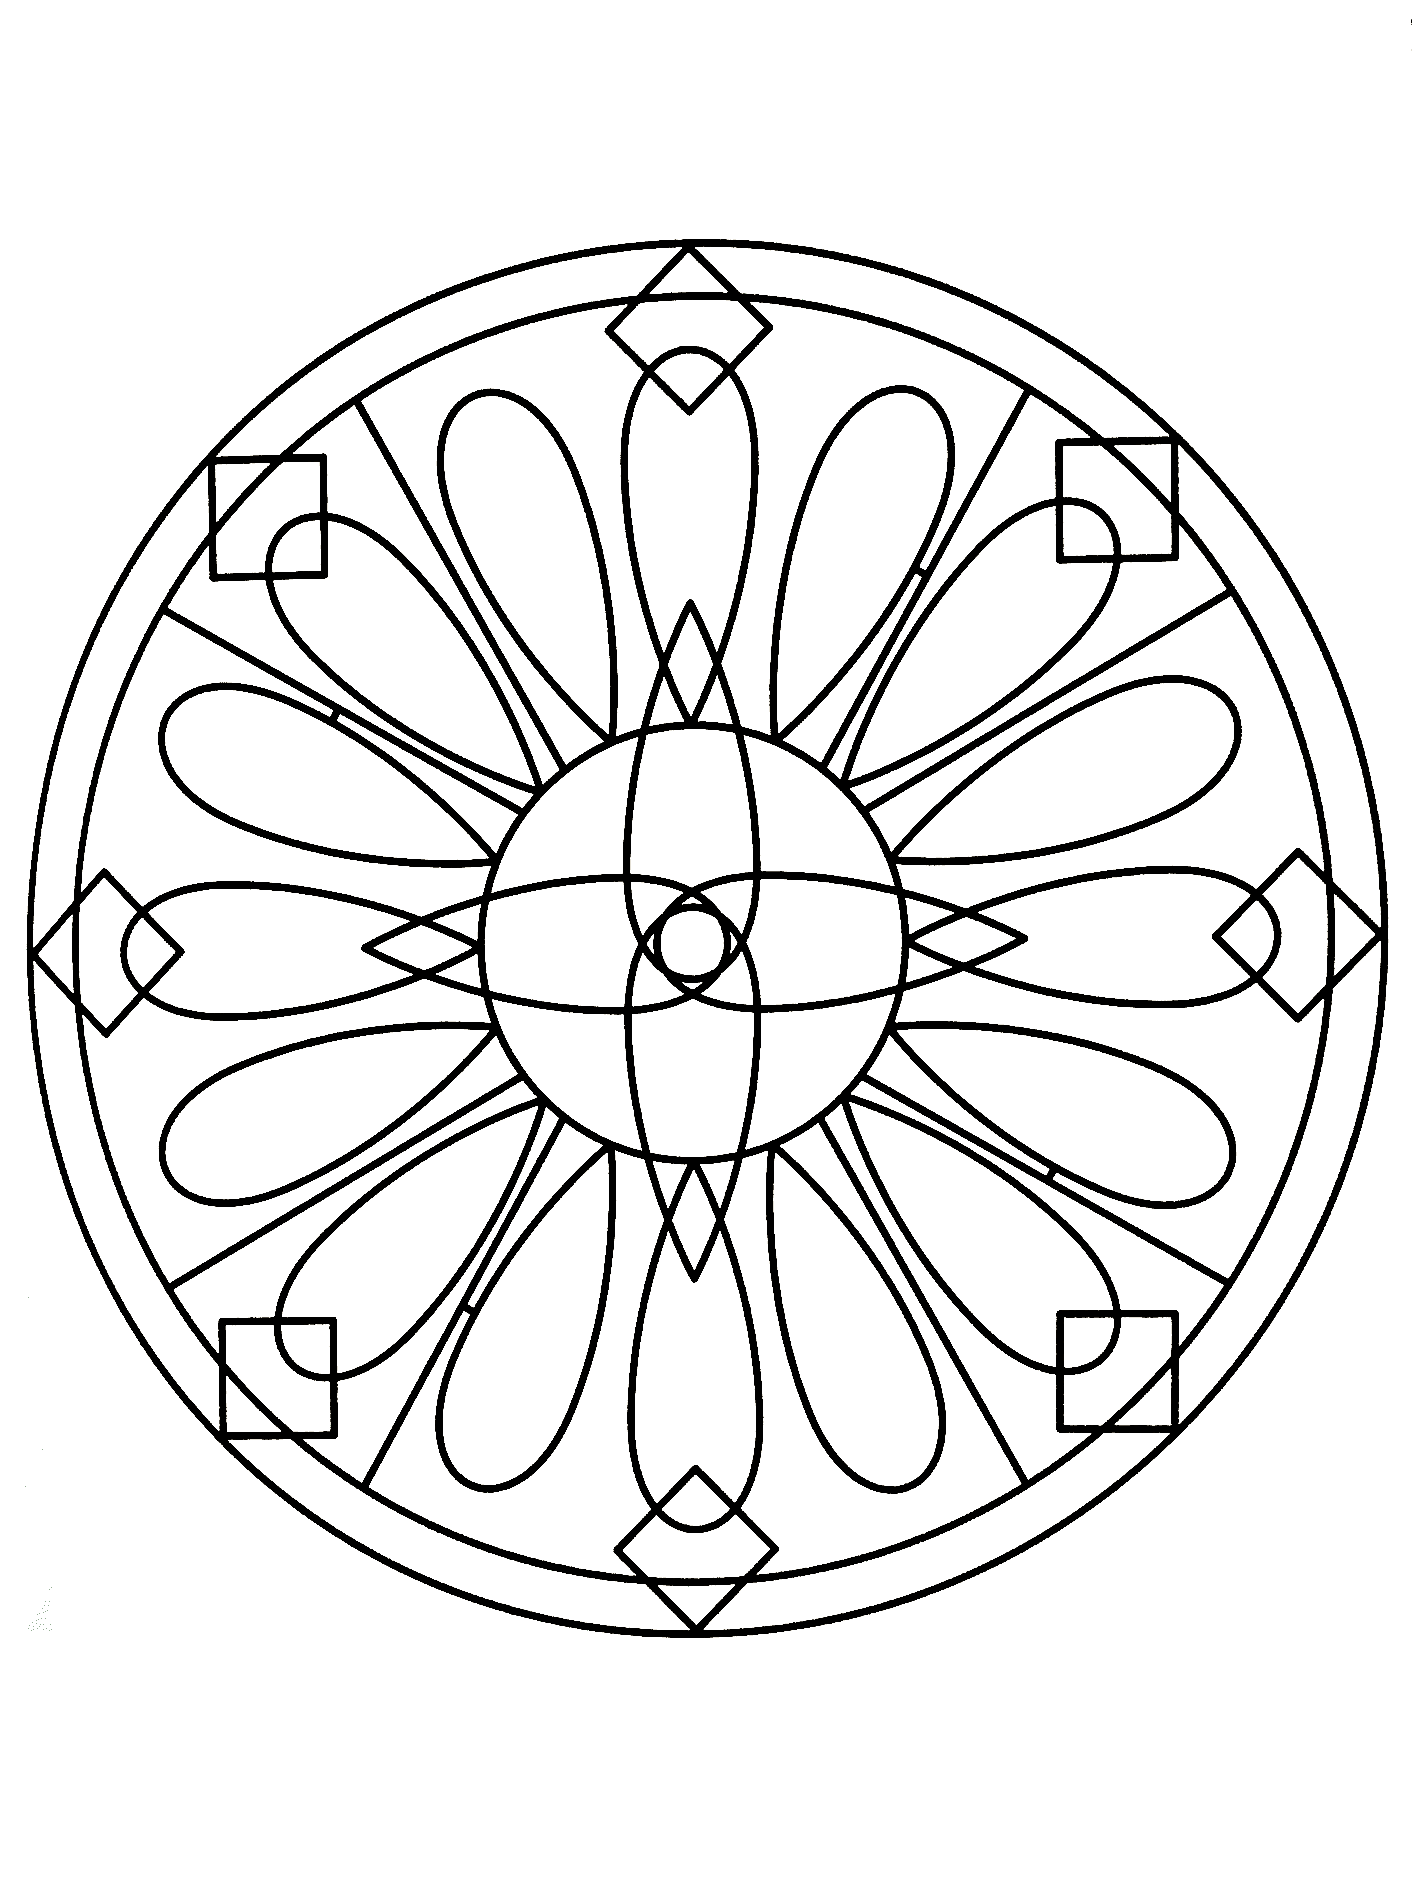 Simple Mandala 77 Mandalas Coloring Pages For Kids To